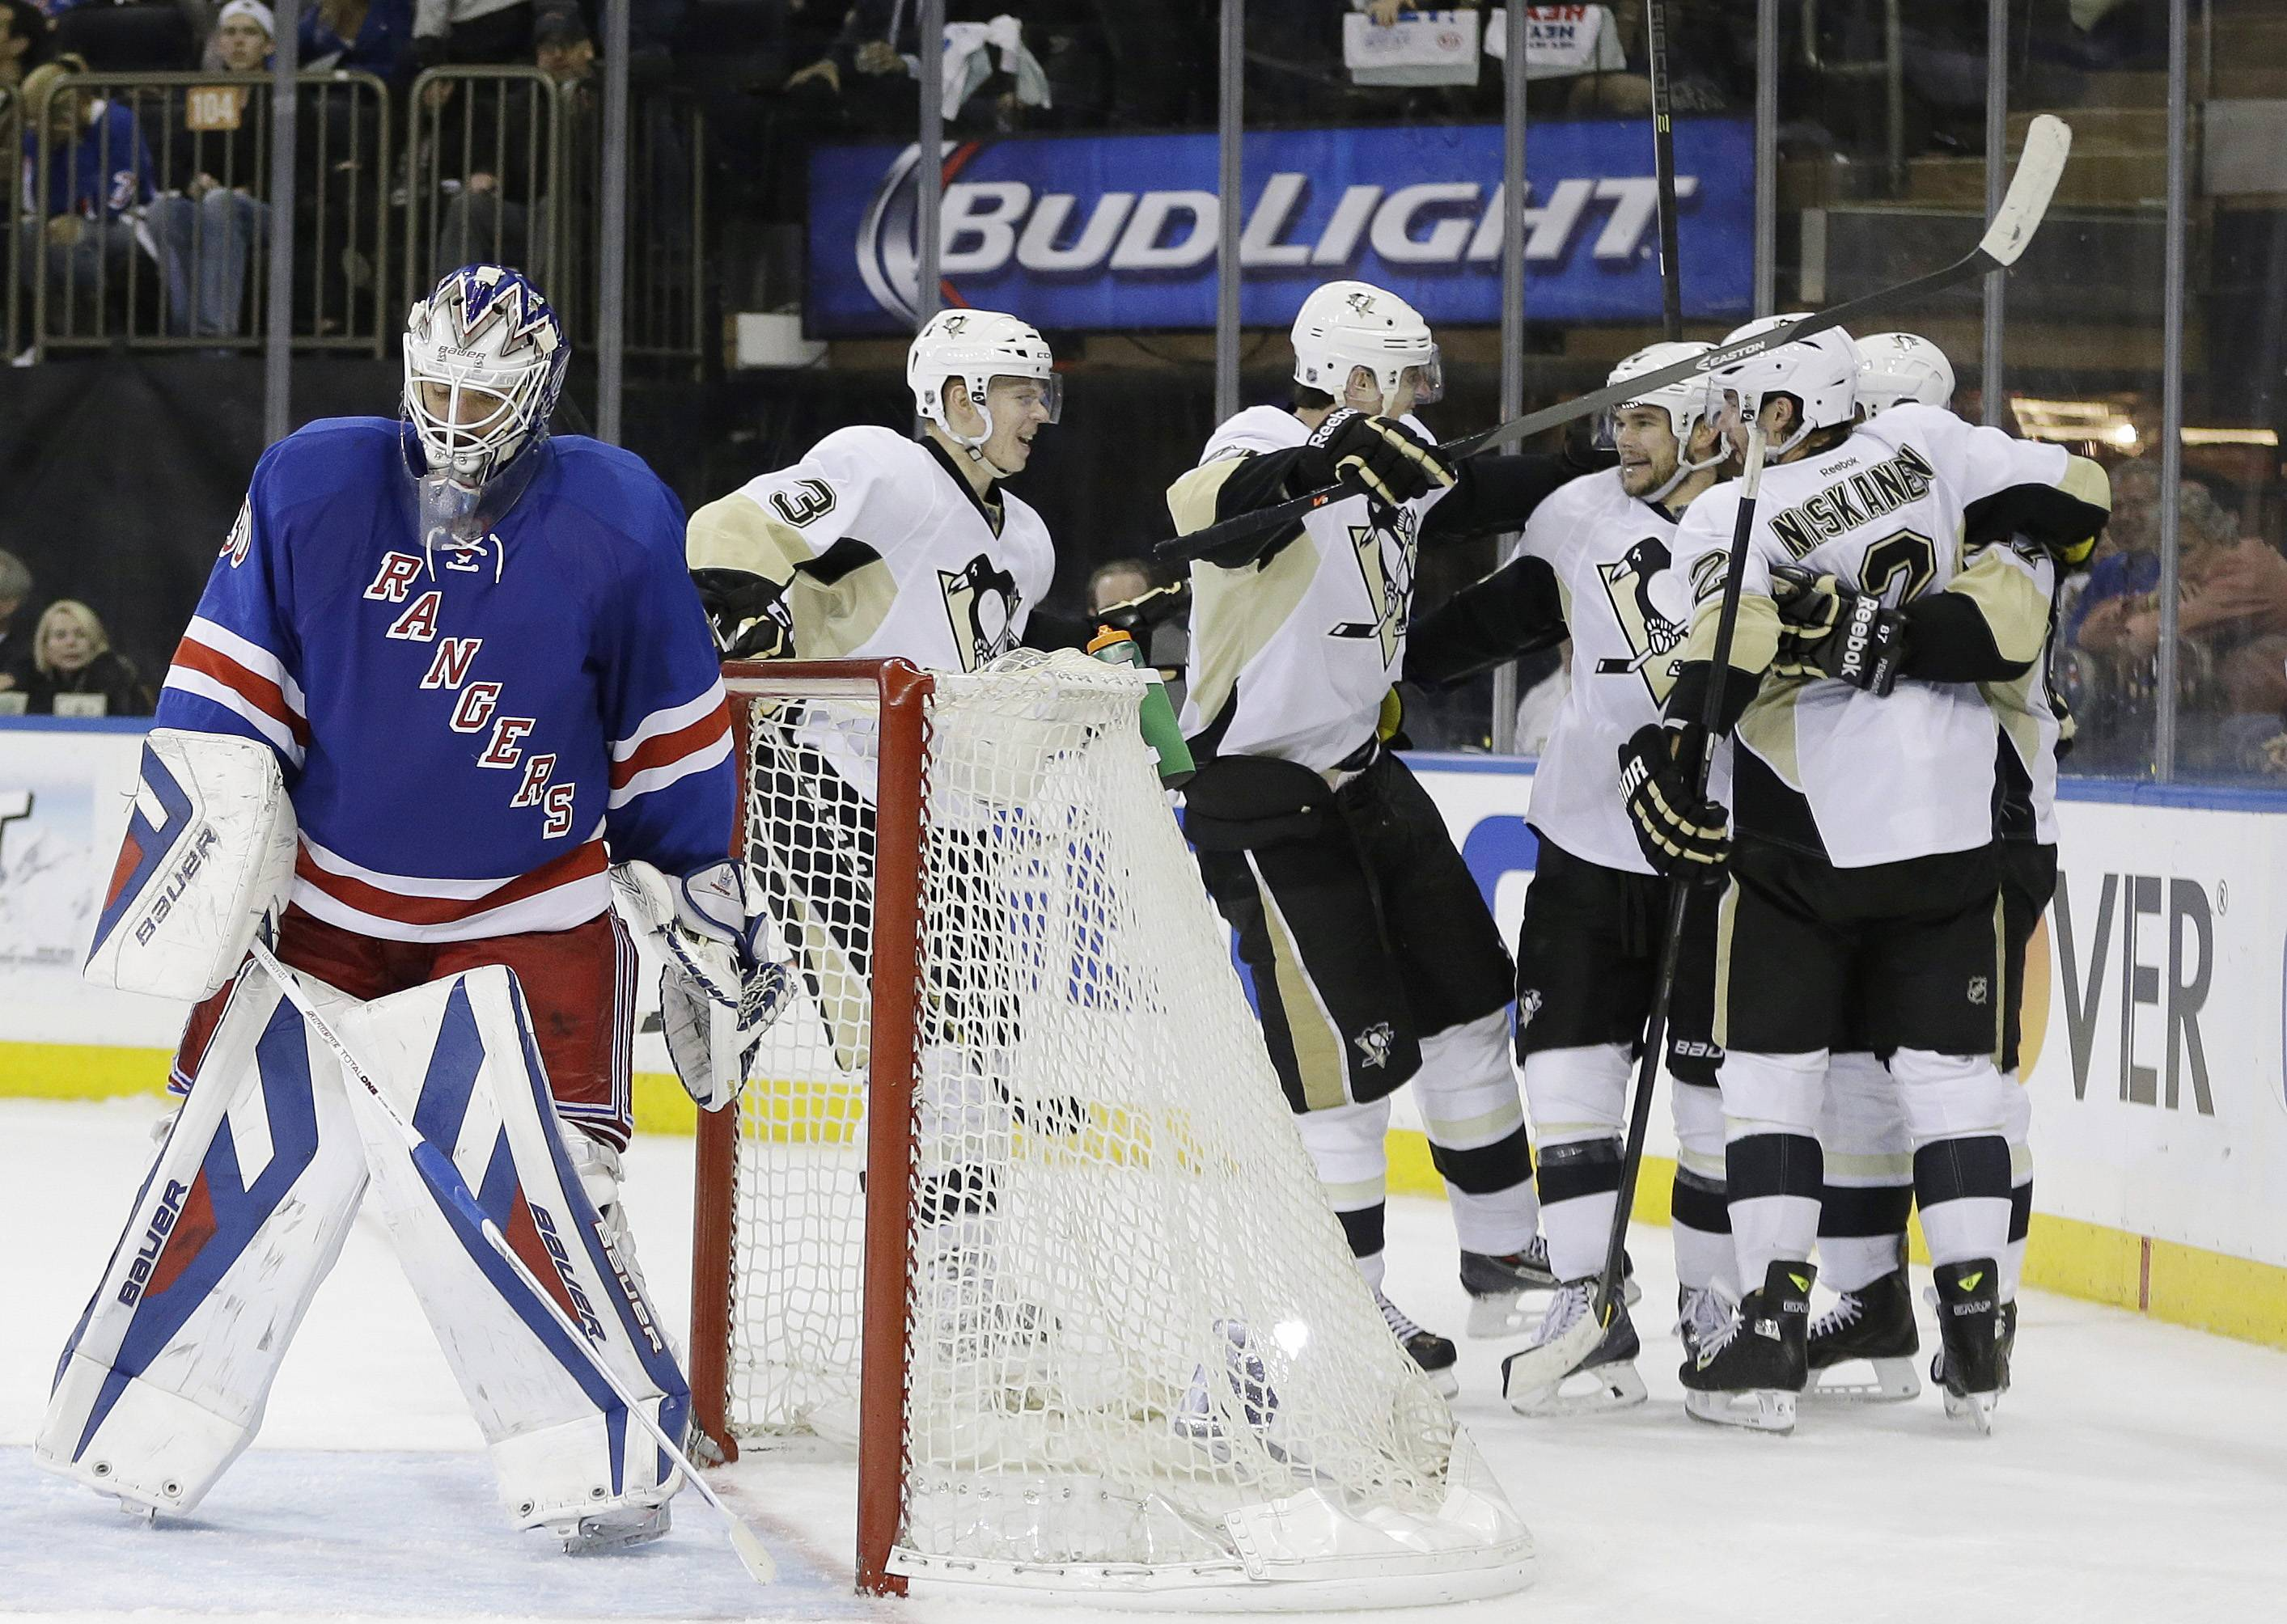 New York Rangers goalie Henrik Lundqvist, left, of Sweden, reacts as the Pittsburgh Penguins celebrate a goal by Chris Kunitz during the third period of a second-round NHL Stanley Cup hockey playoff series Wednesday, May 7, 2014, in New York. The Penguins won 4-2. (AP Photo/Frank Franklin II)